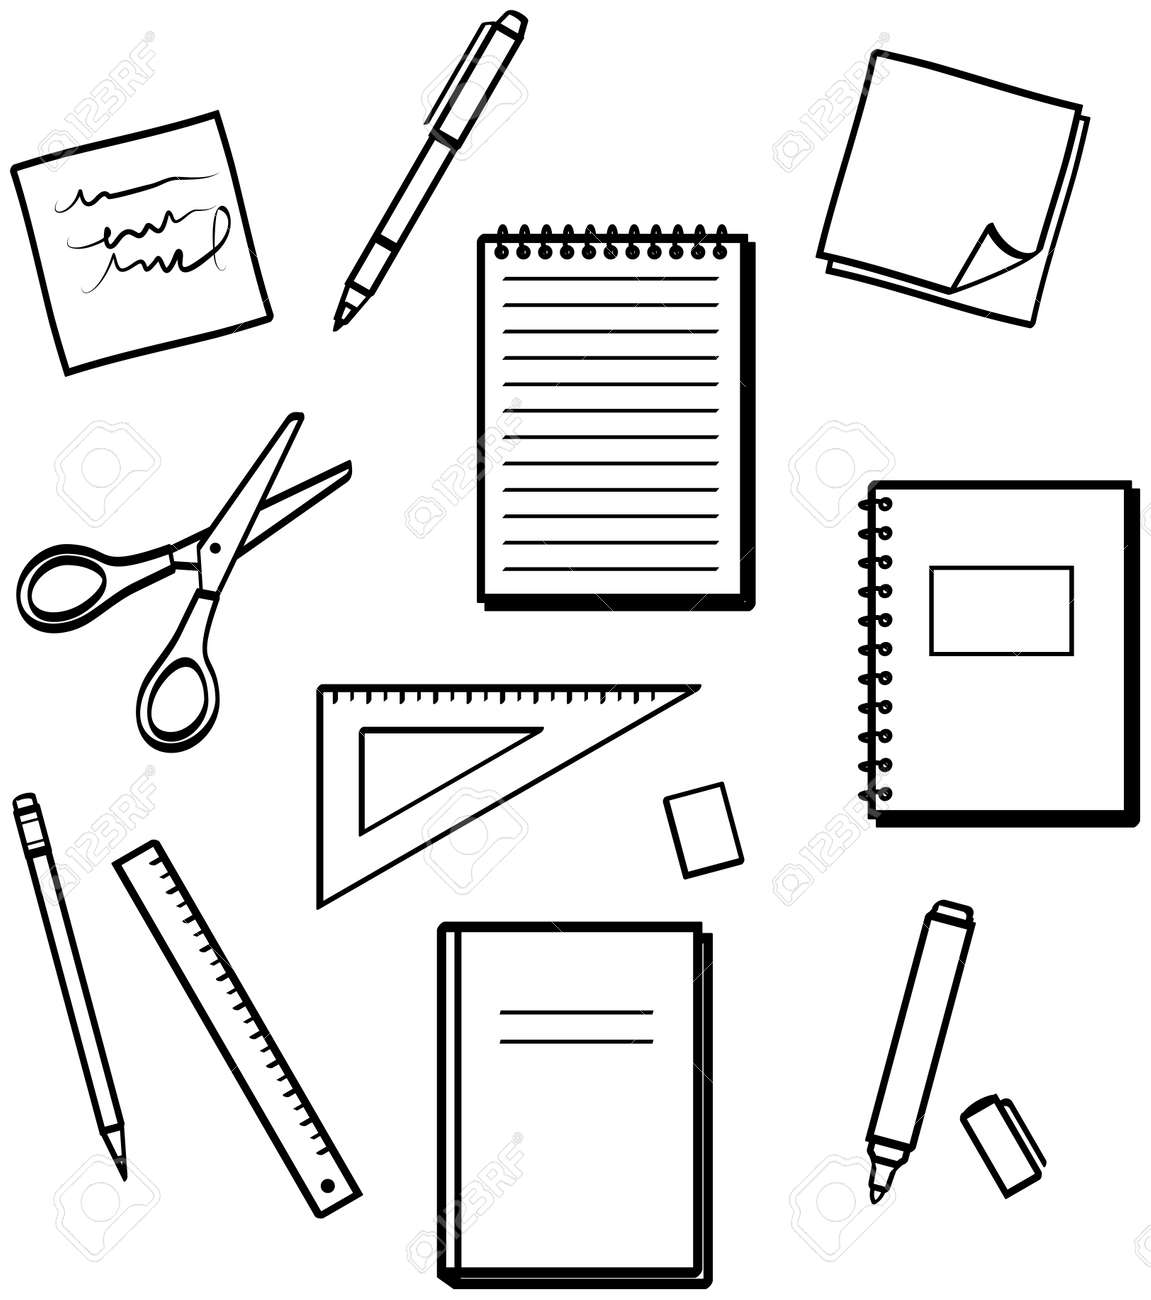 office supplies vector illustrations royalty free cliparts rh 123rf com Office Supply Room office supplies clipart